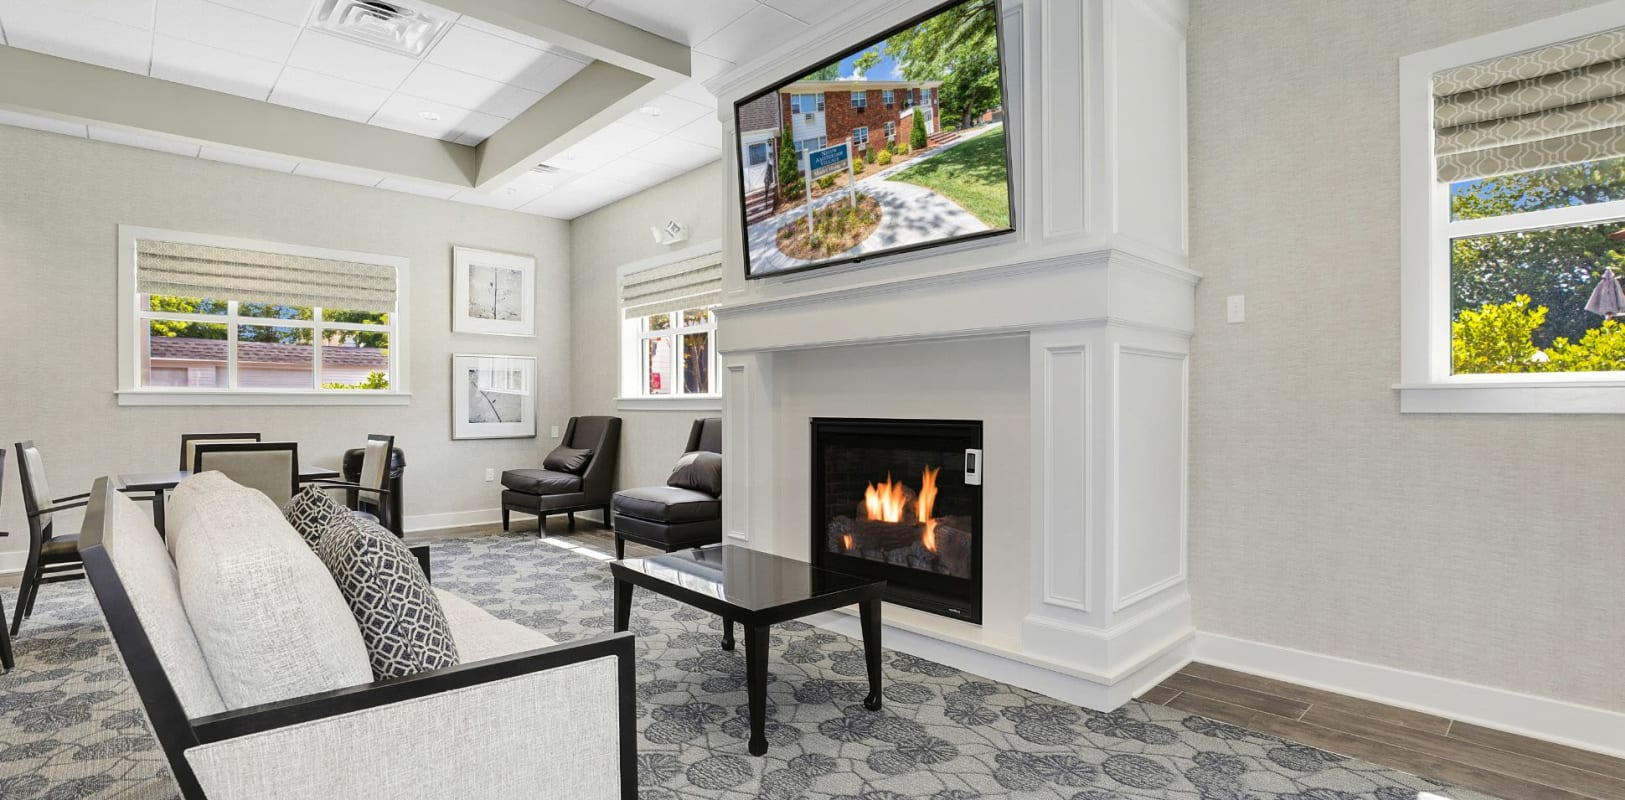 Lounge with a fireplace at Nieuw Amsterdam Village in South Amboy, New Jersey